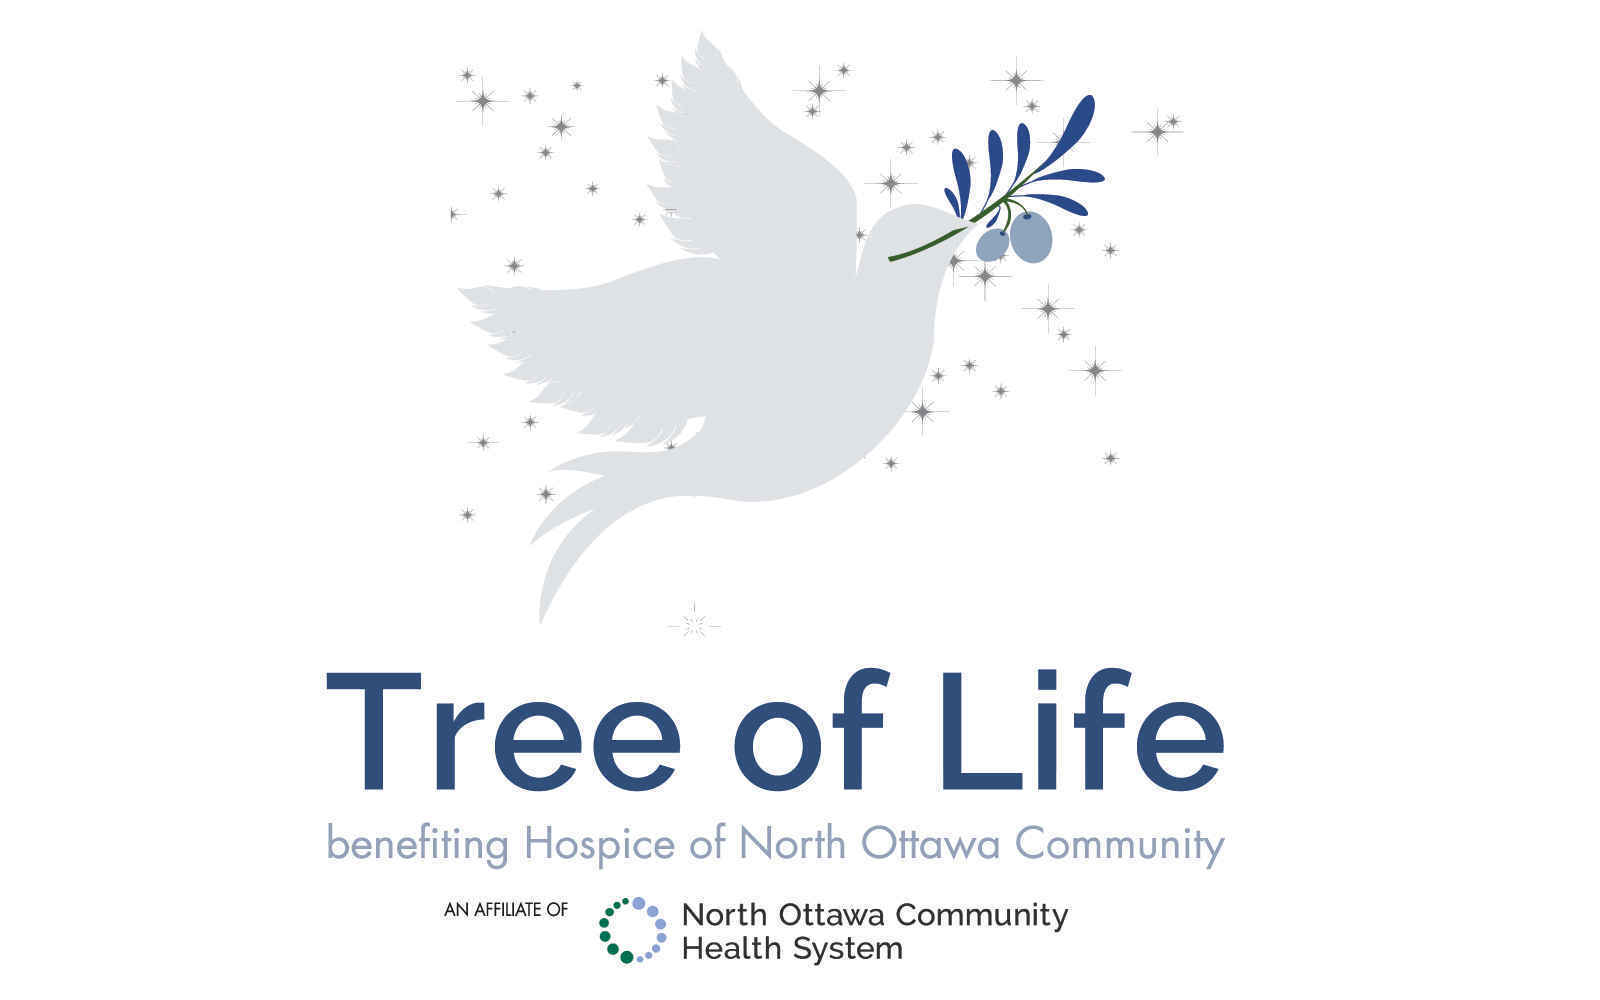 Honor your loved ones through Hospice of North Ottawa Community's TREE OF LIFE! image